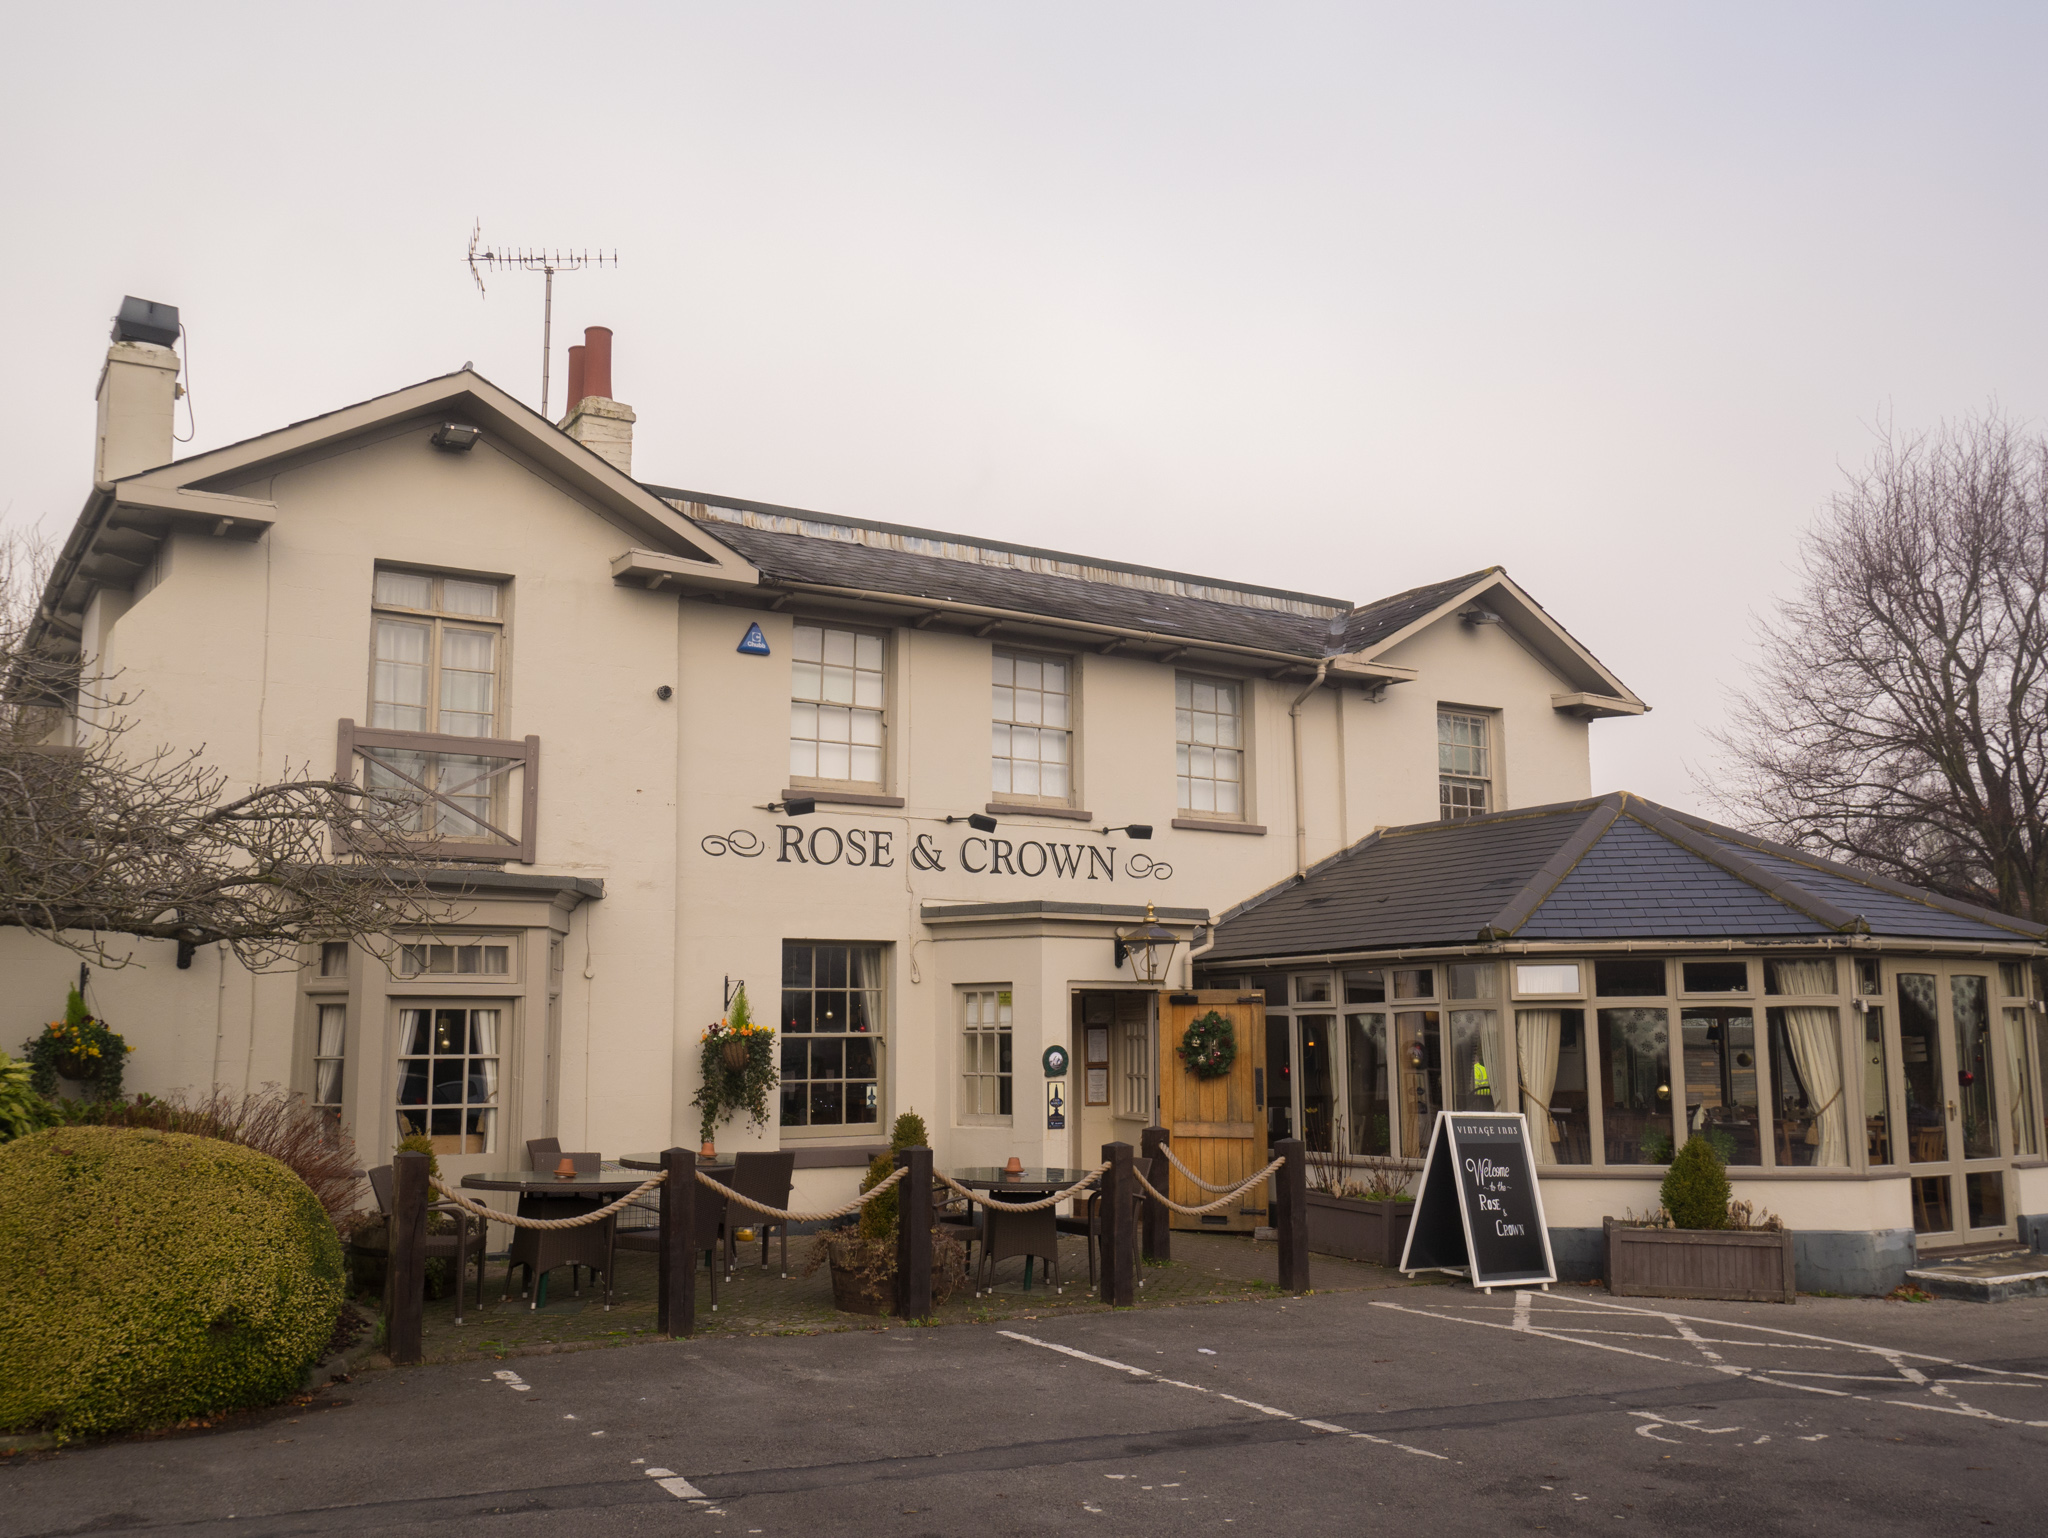 Review of the Rose and Crown in Dunton Green